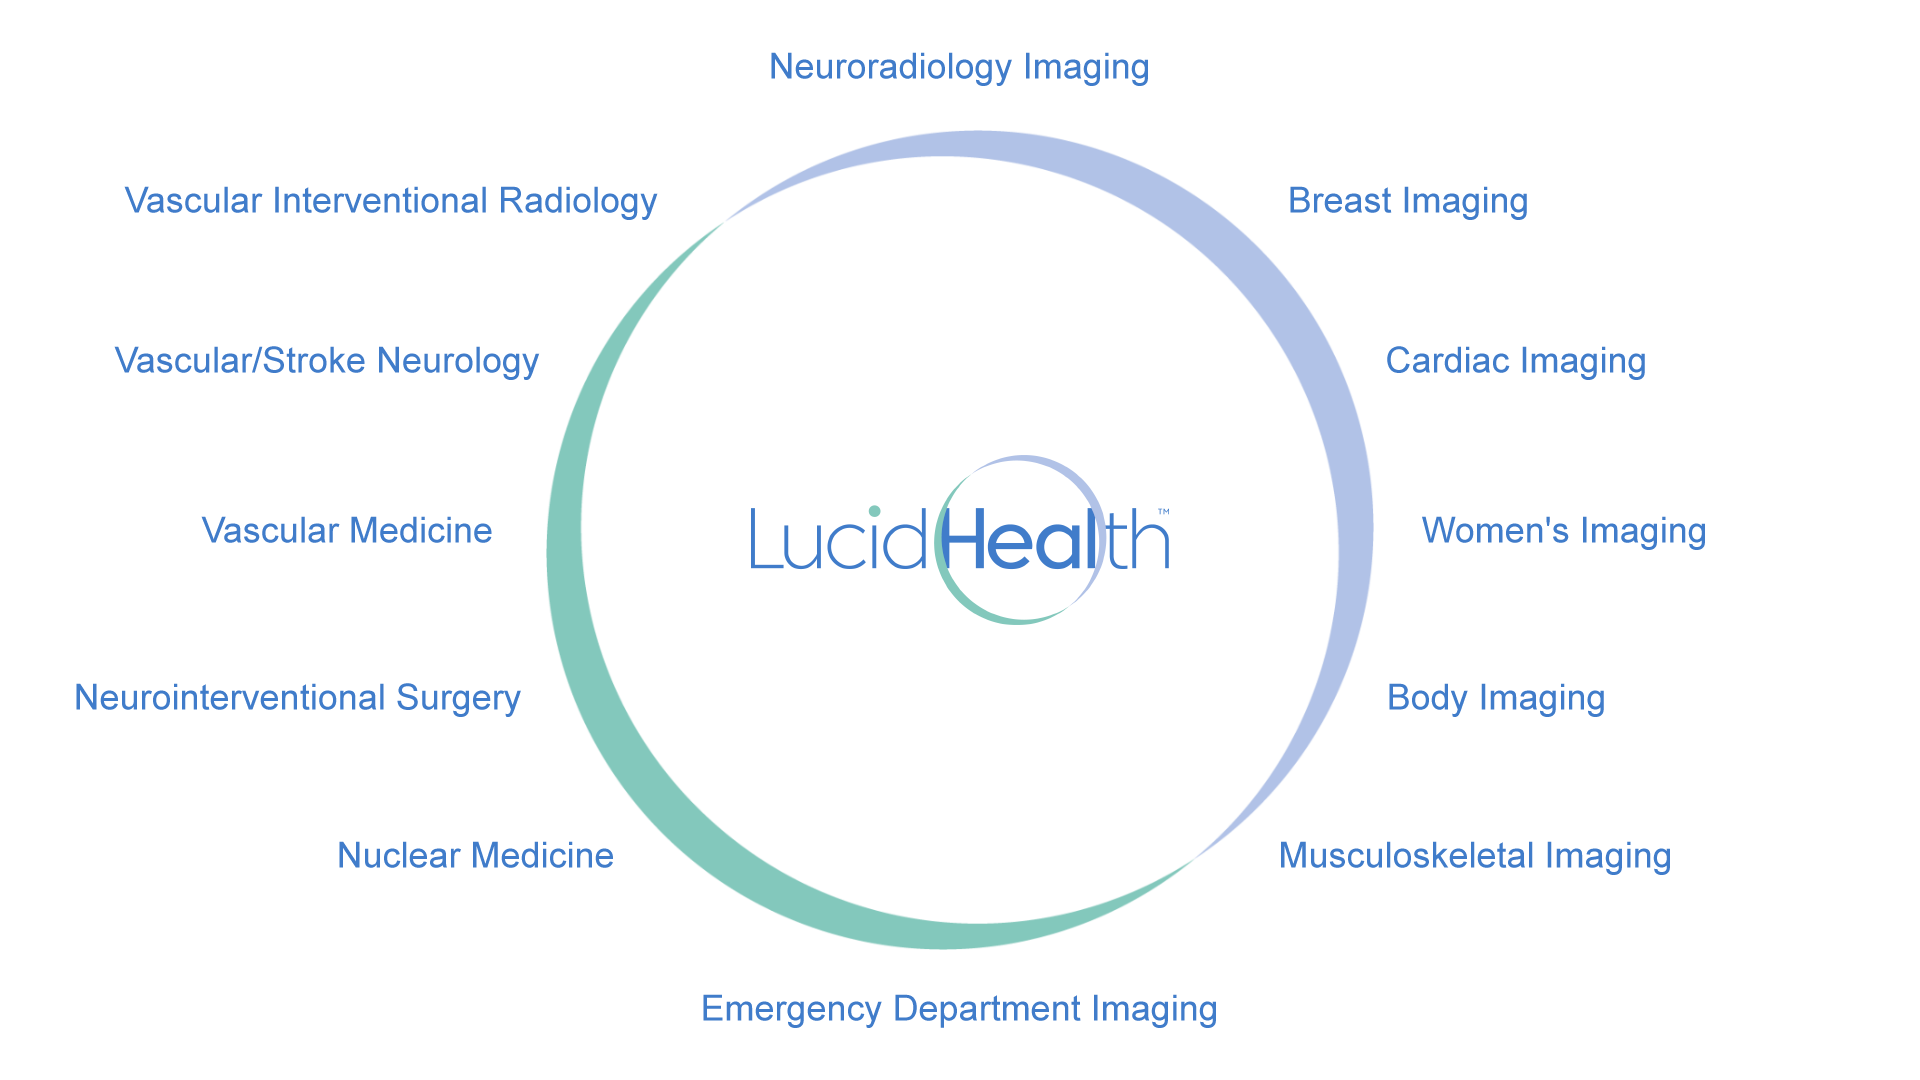 Subspecializations arranged in a circle around LucidHealth.